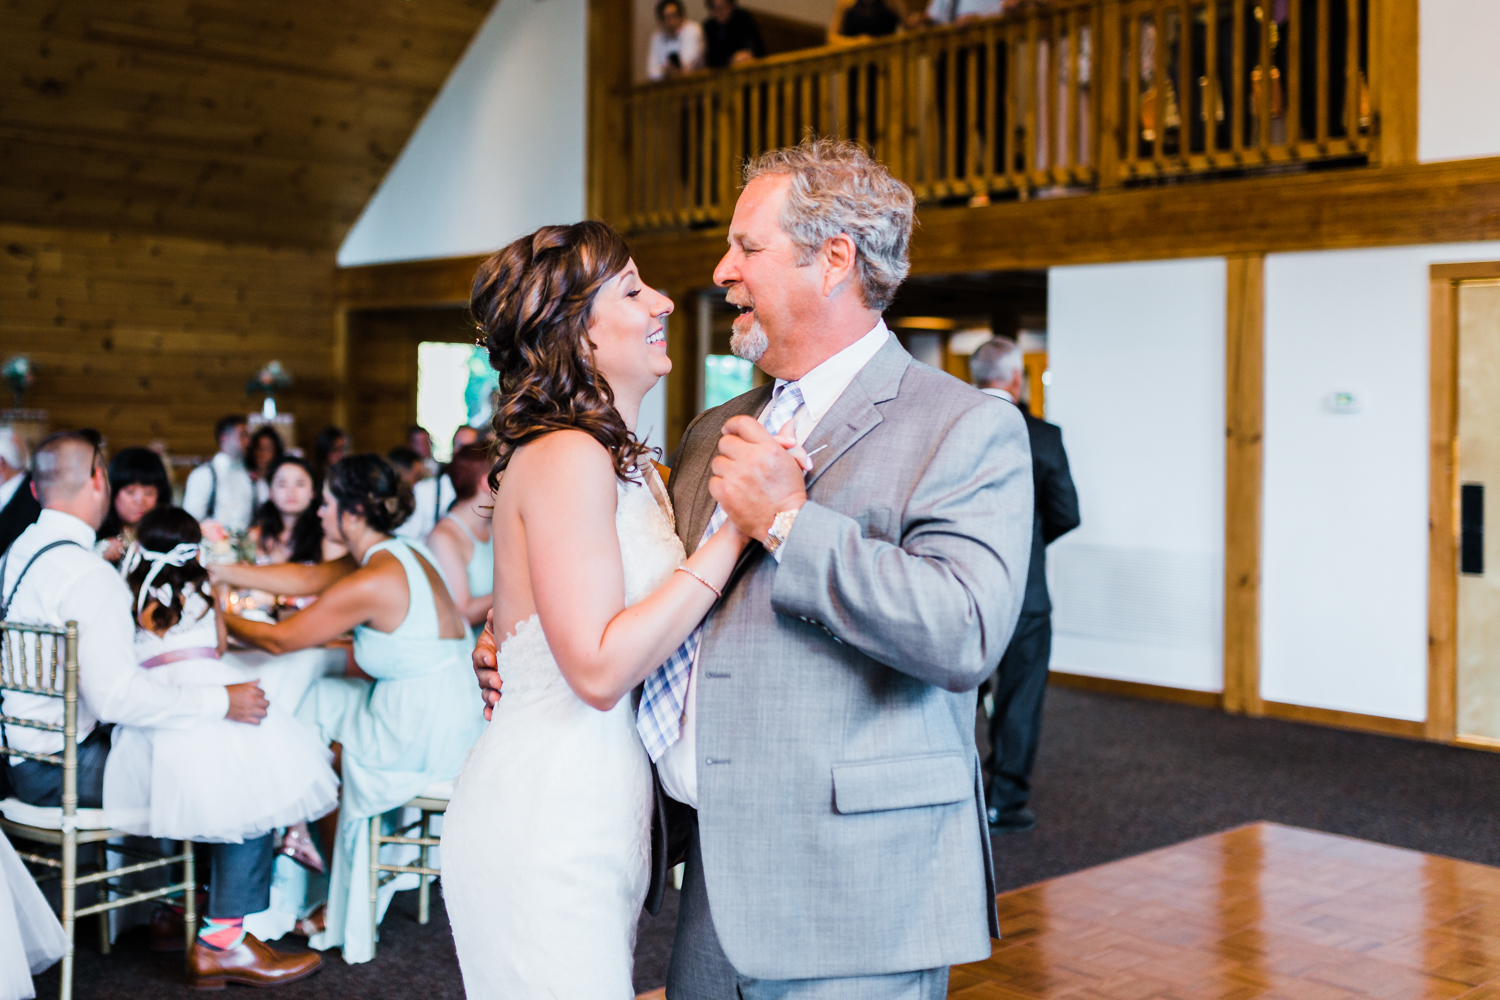 bride dancing with her stepdad - MD wedding photographer